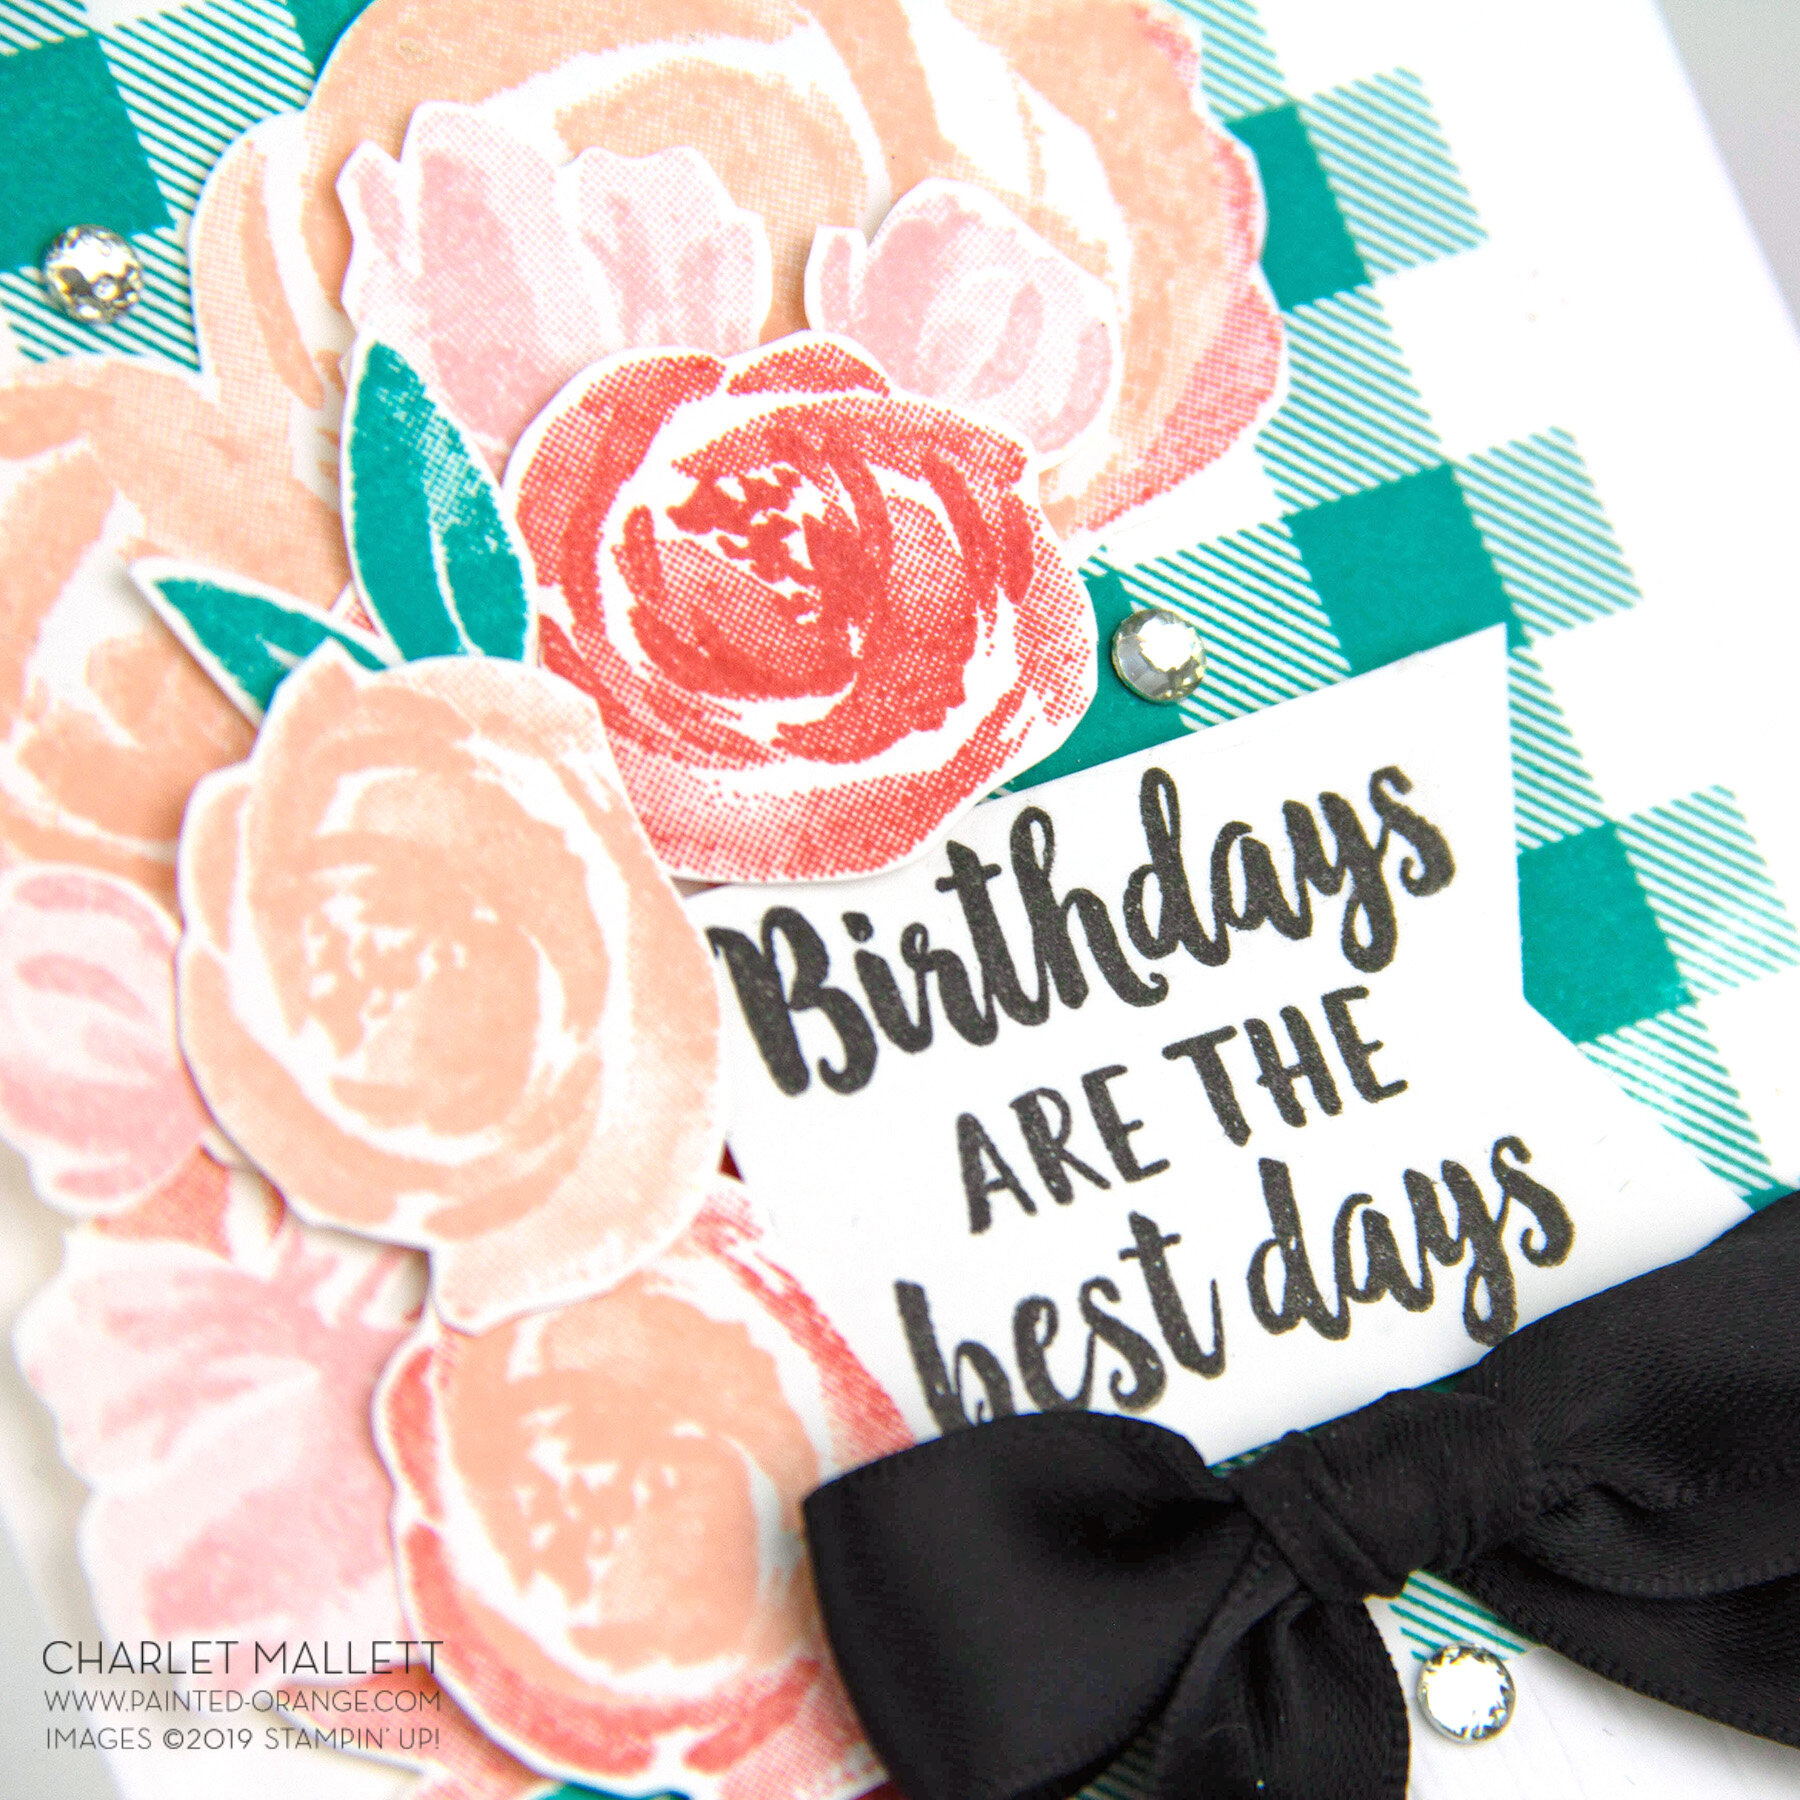 Beautiful Friendship Birthday Card- Charlet Mallett, Stampin' Up!